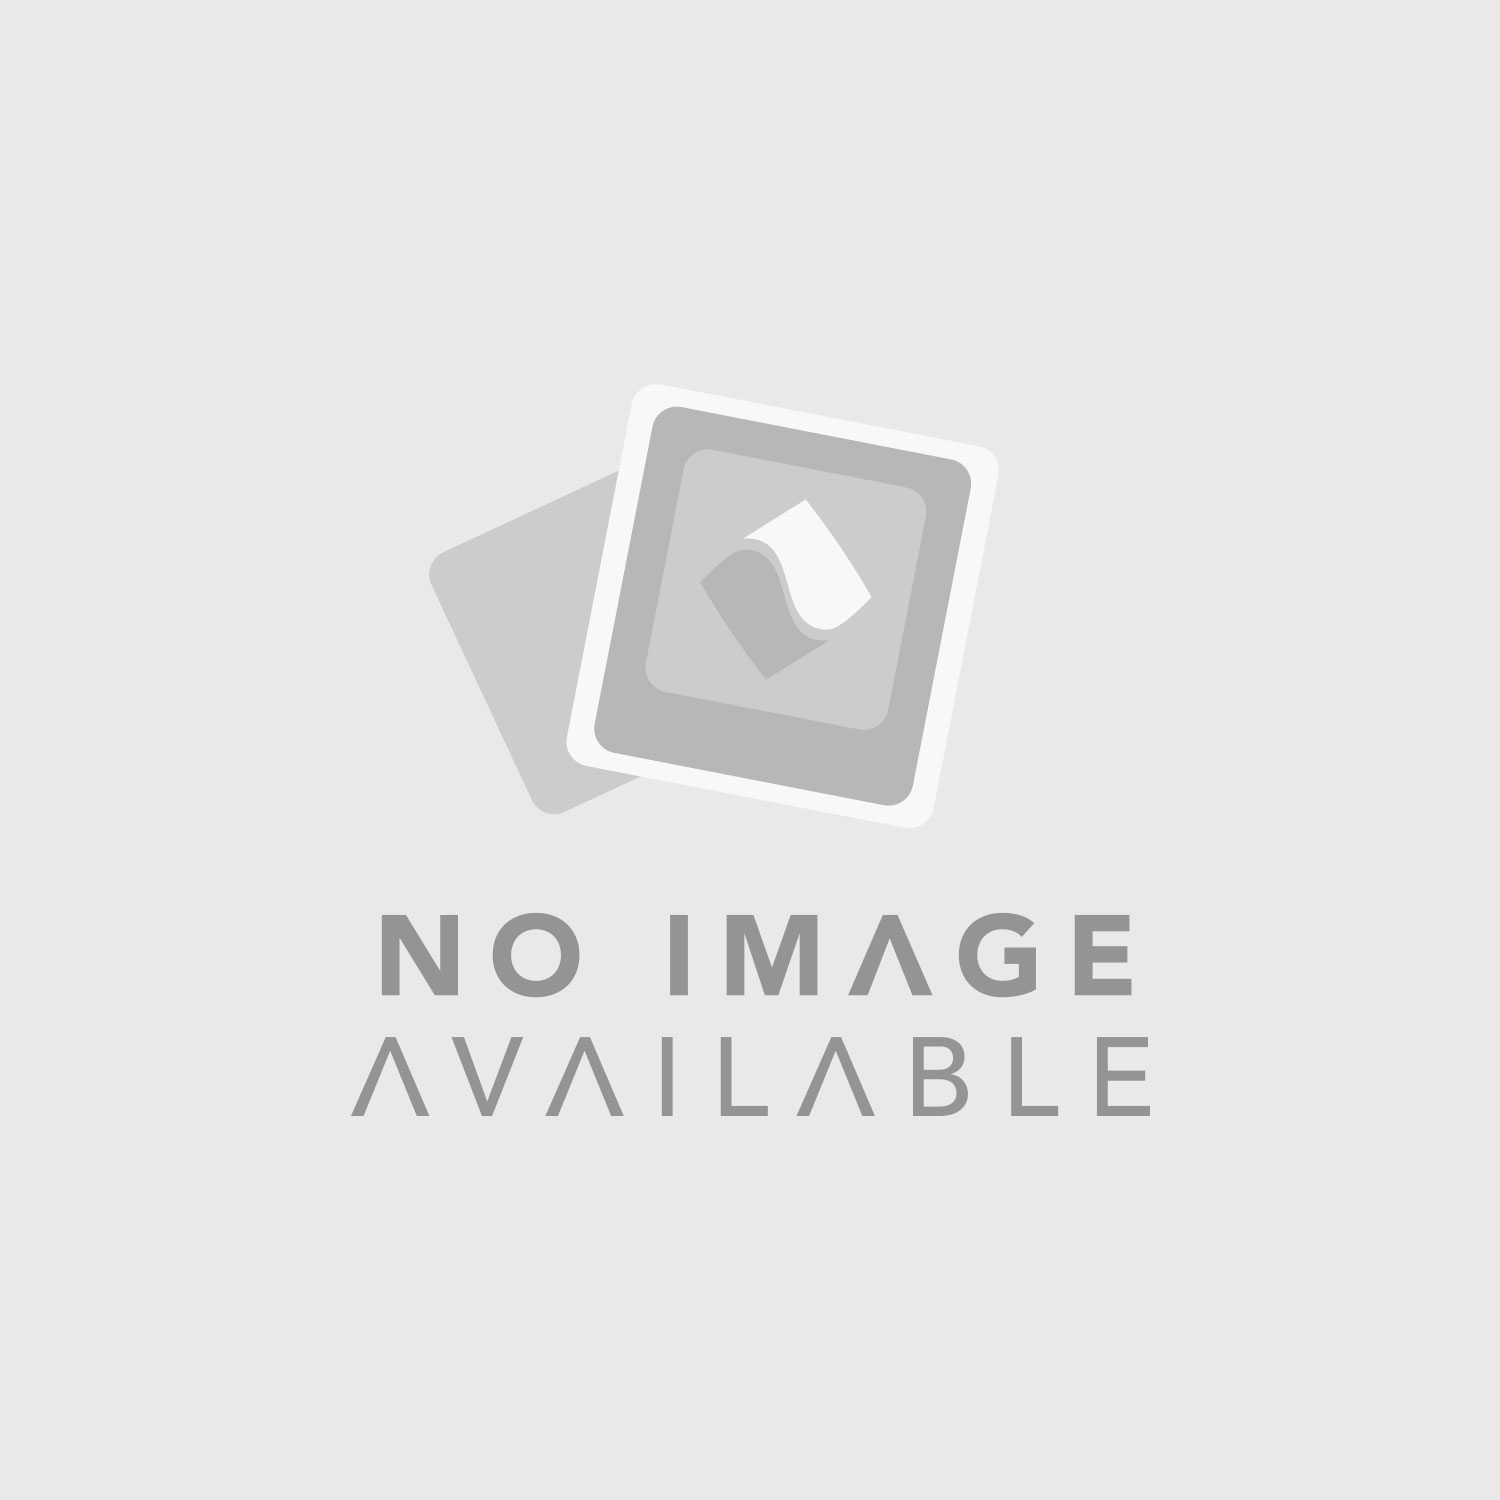 DPA d:mension Surround Kit with 3x 4006A, 2x 4011A Microphones